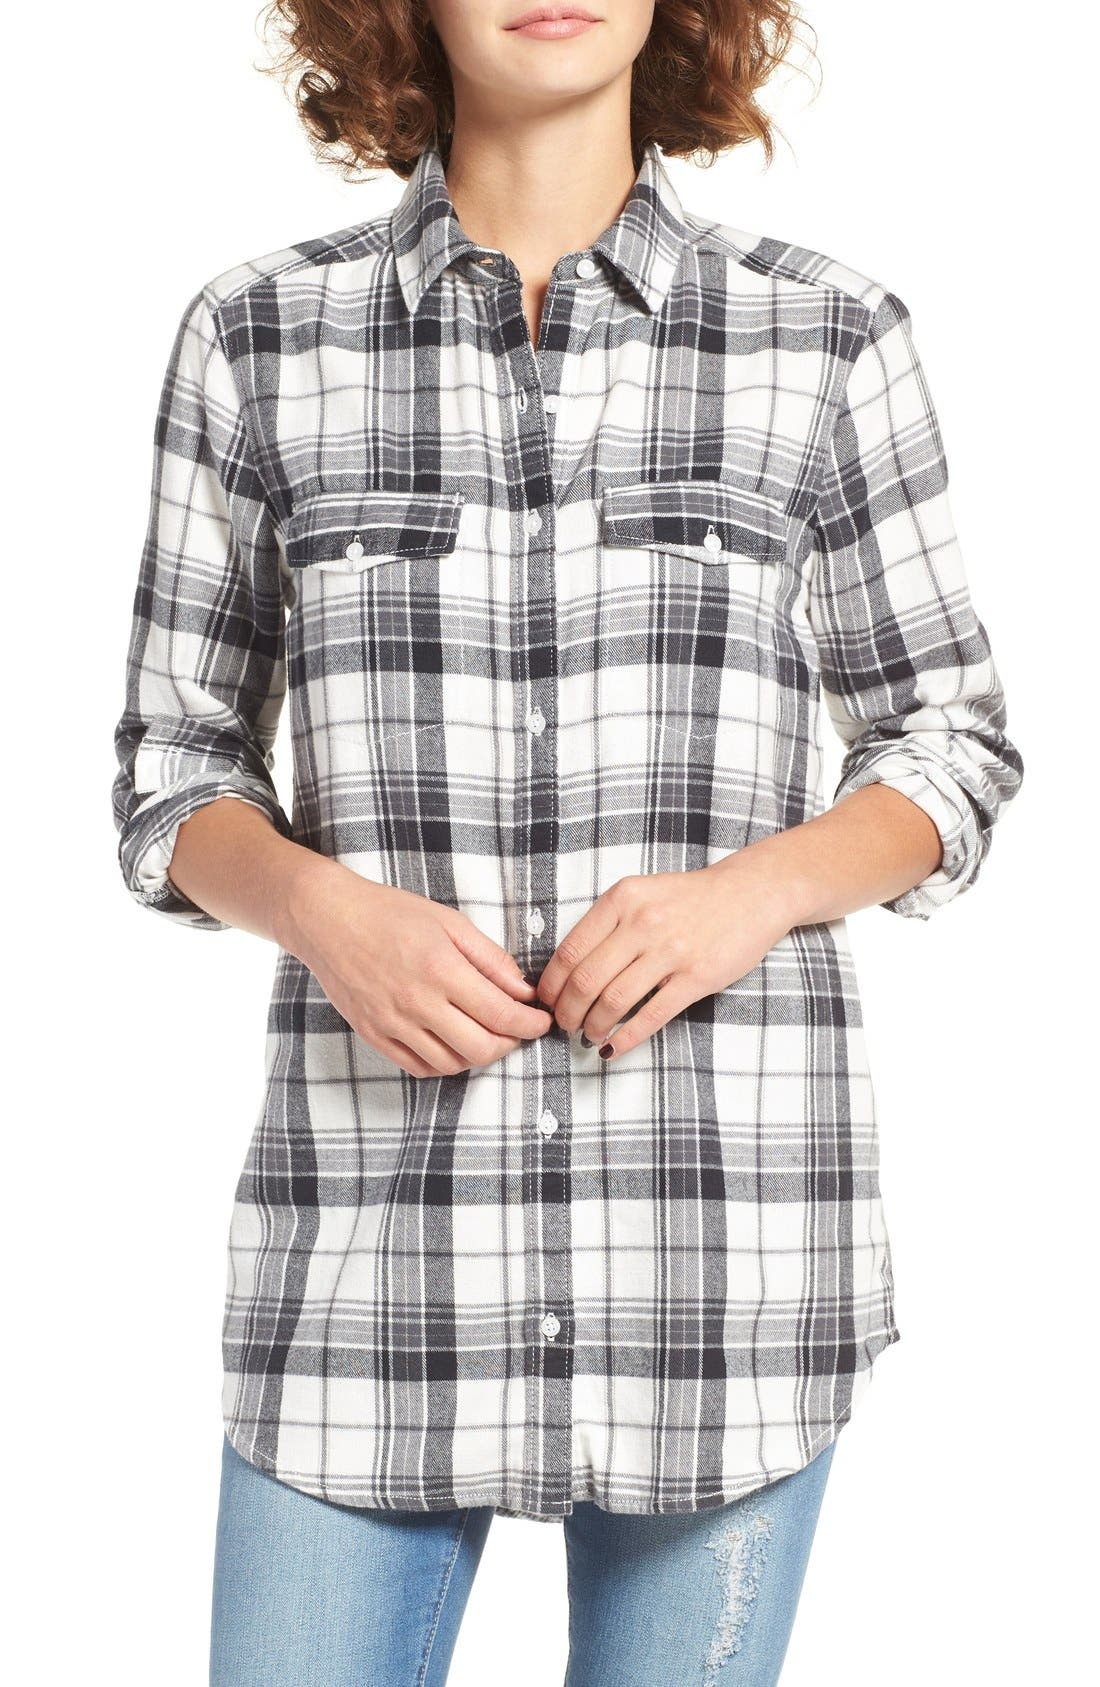 Alternate Image 1 Selected - BP. Plaid Flannel Shirt